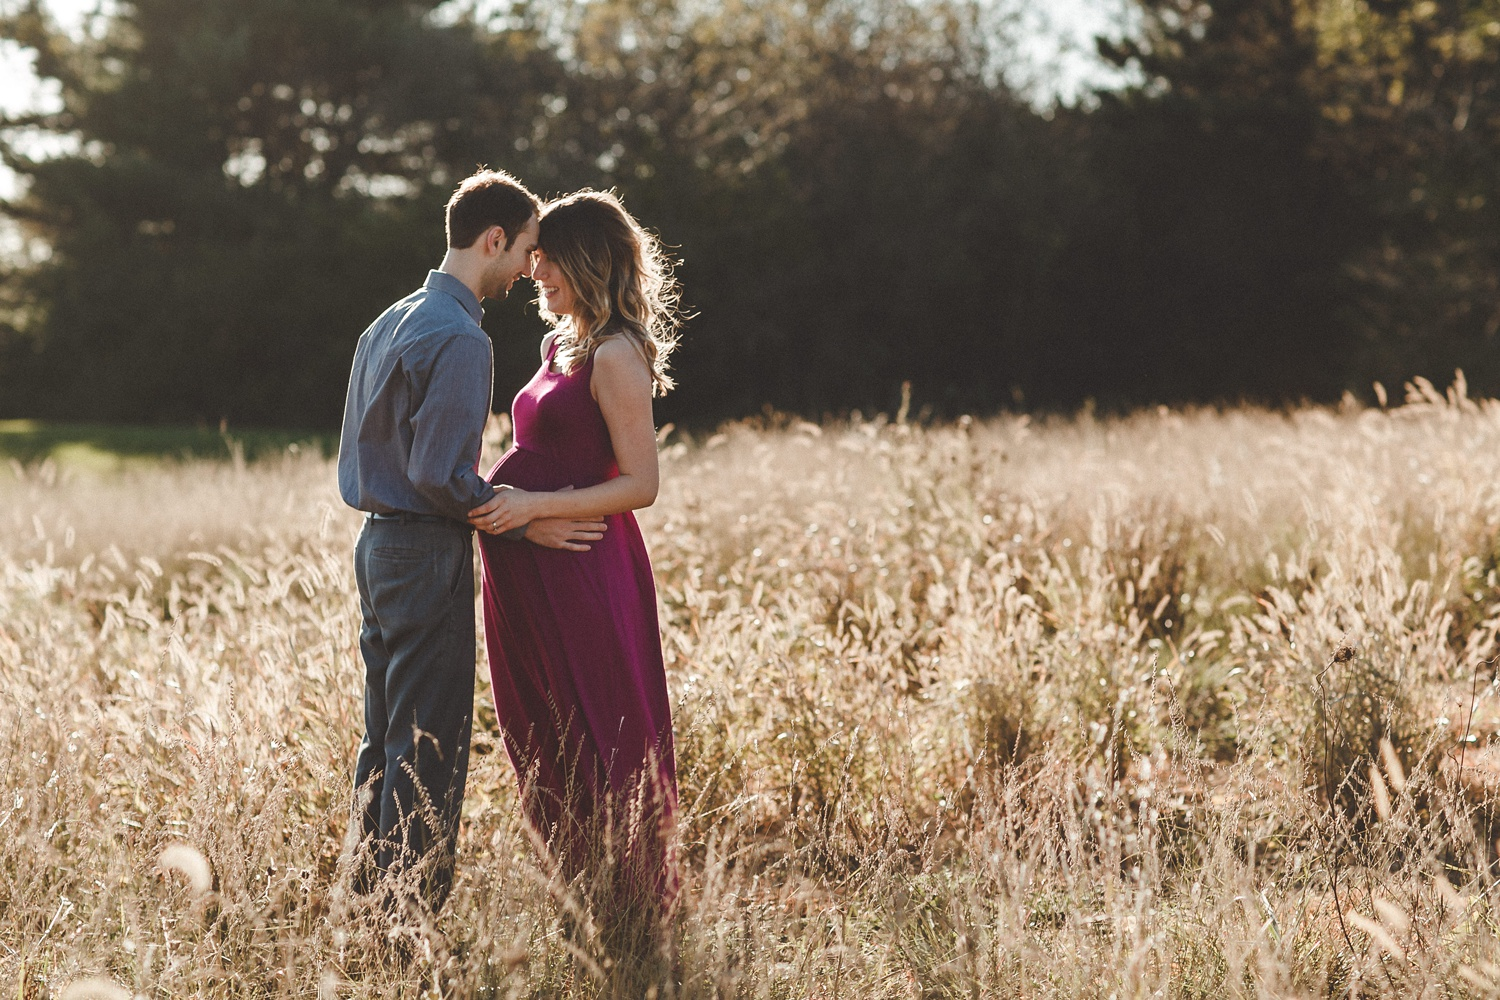 dekalb_IL_maternity_portrait_photographer_0003.jpg